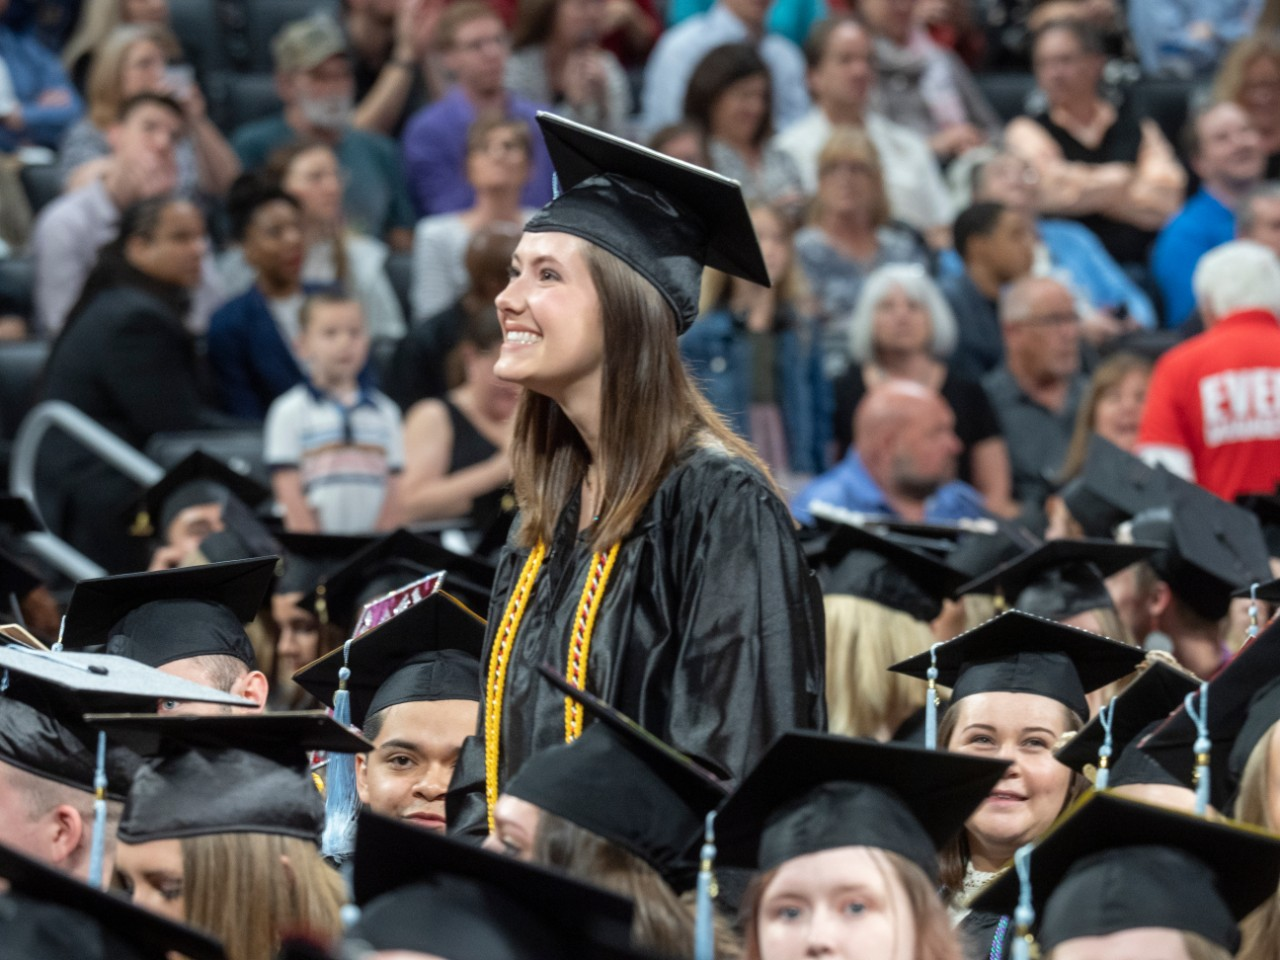 A student in a cap and gown smiles during commencement.